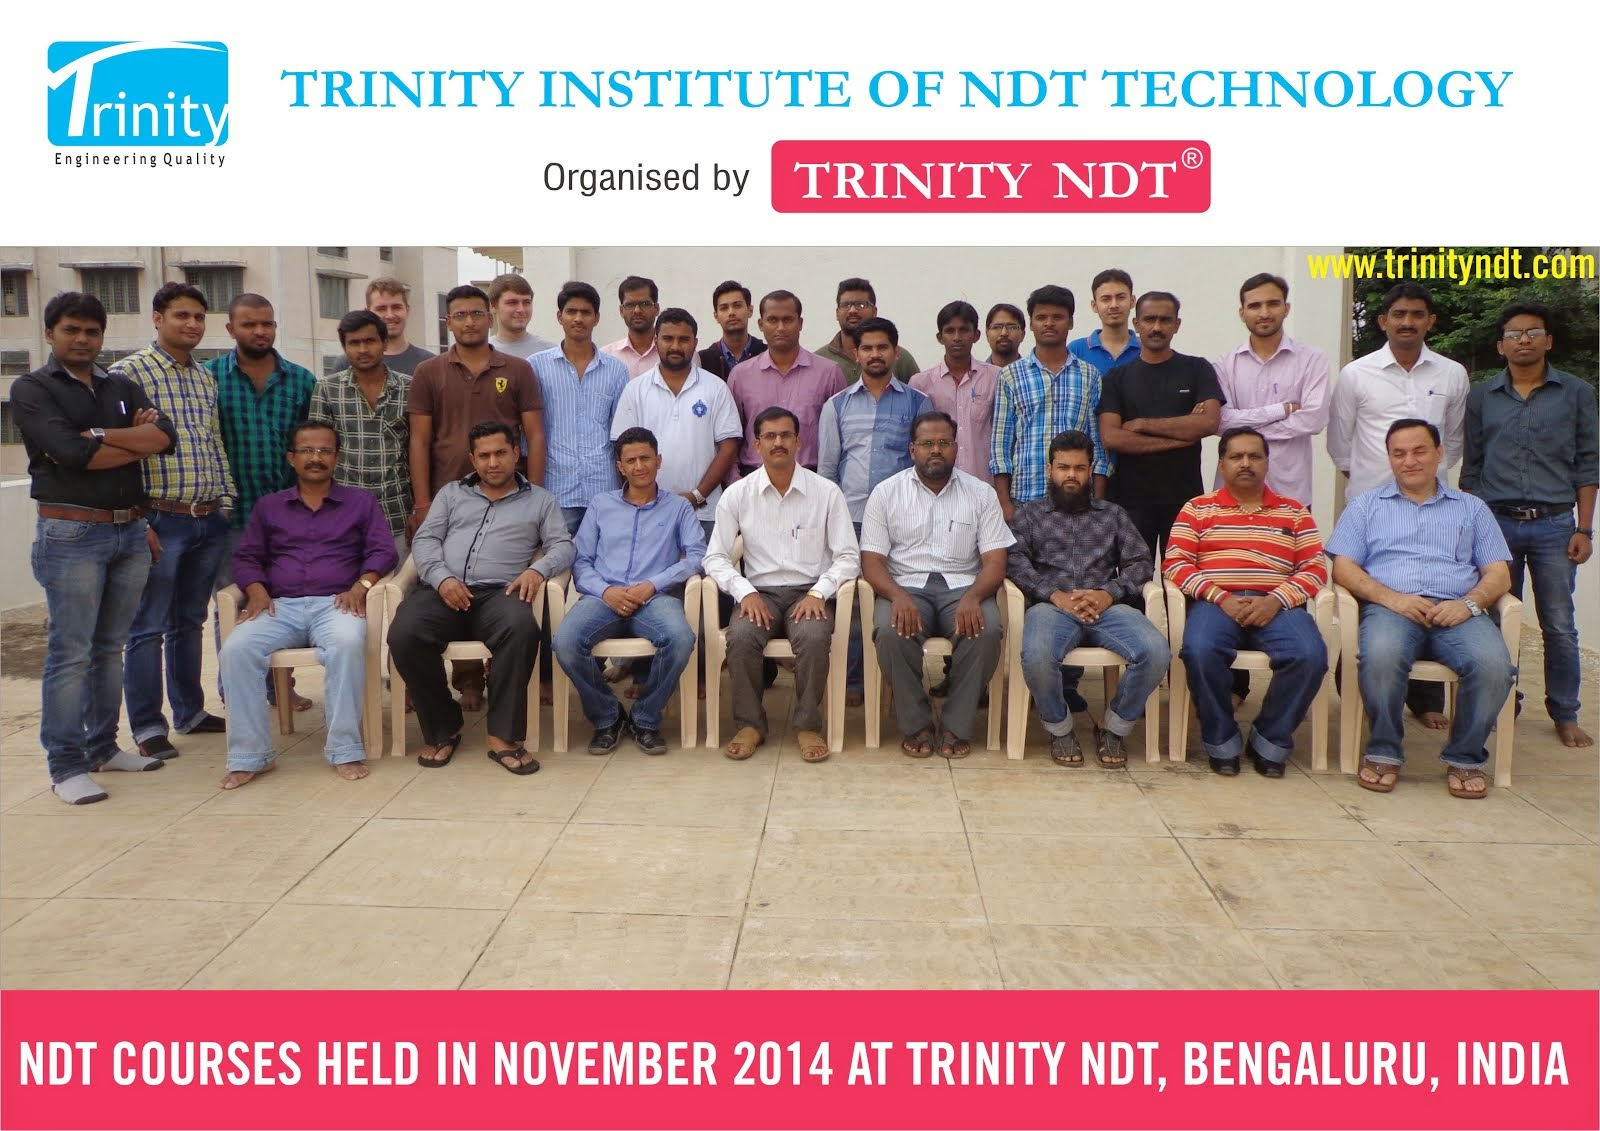 Participants - NDT Level II Courses held in India at Trinity NDT in November 2014